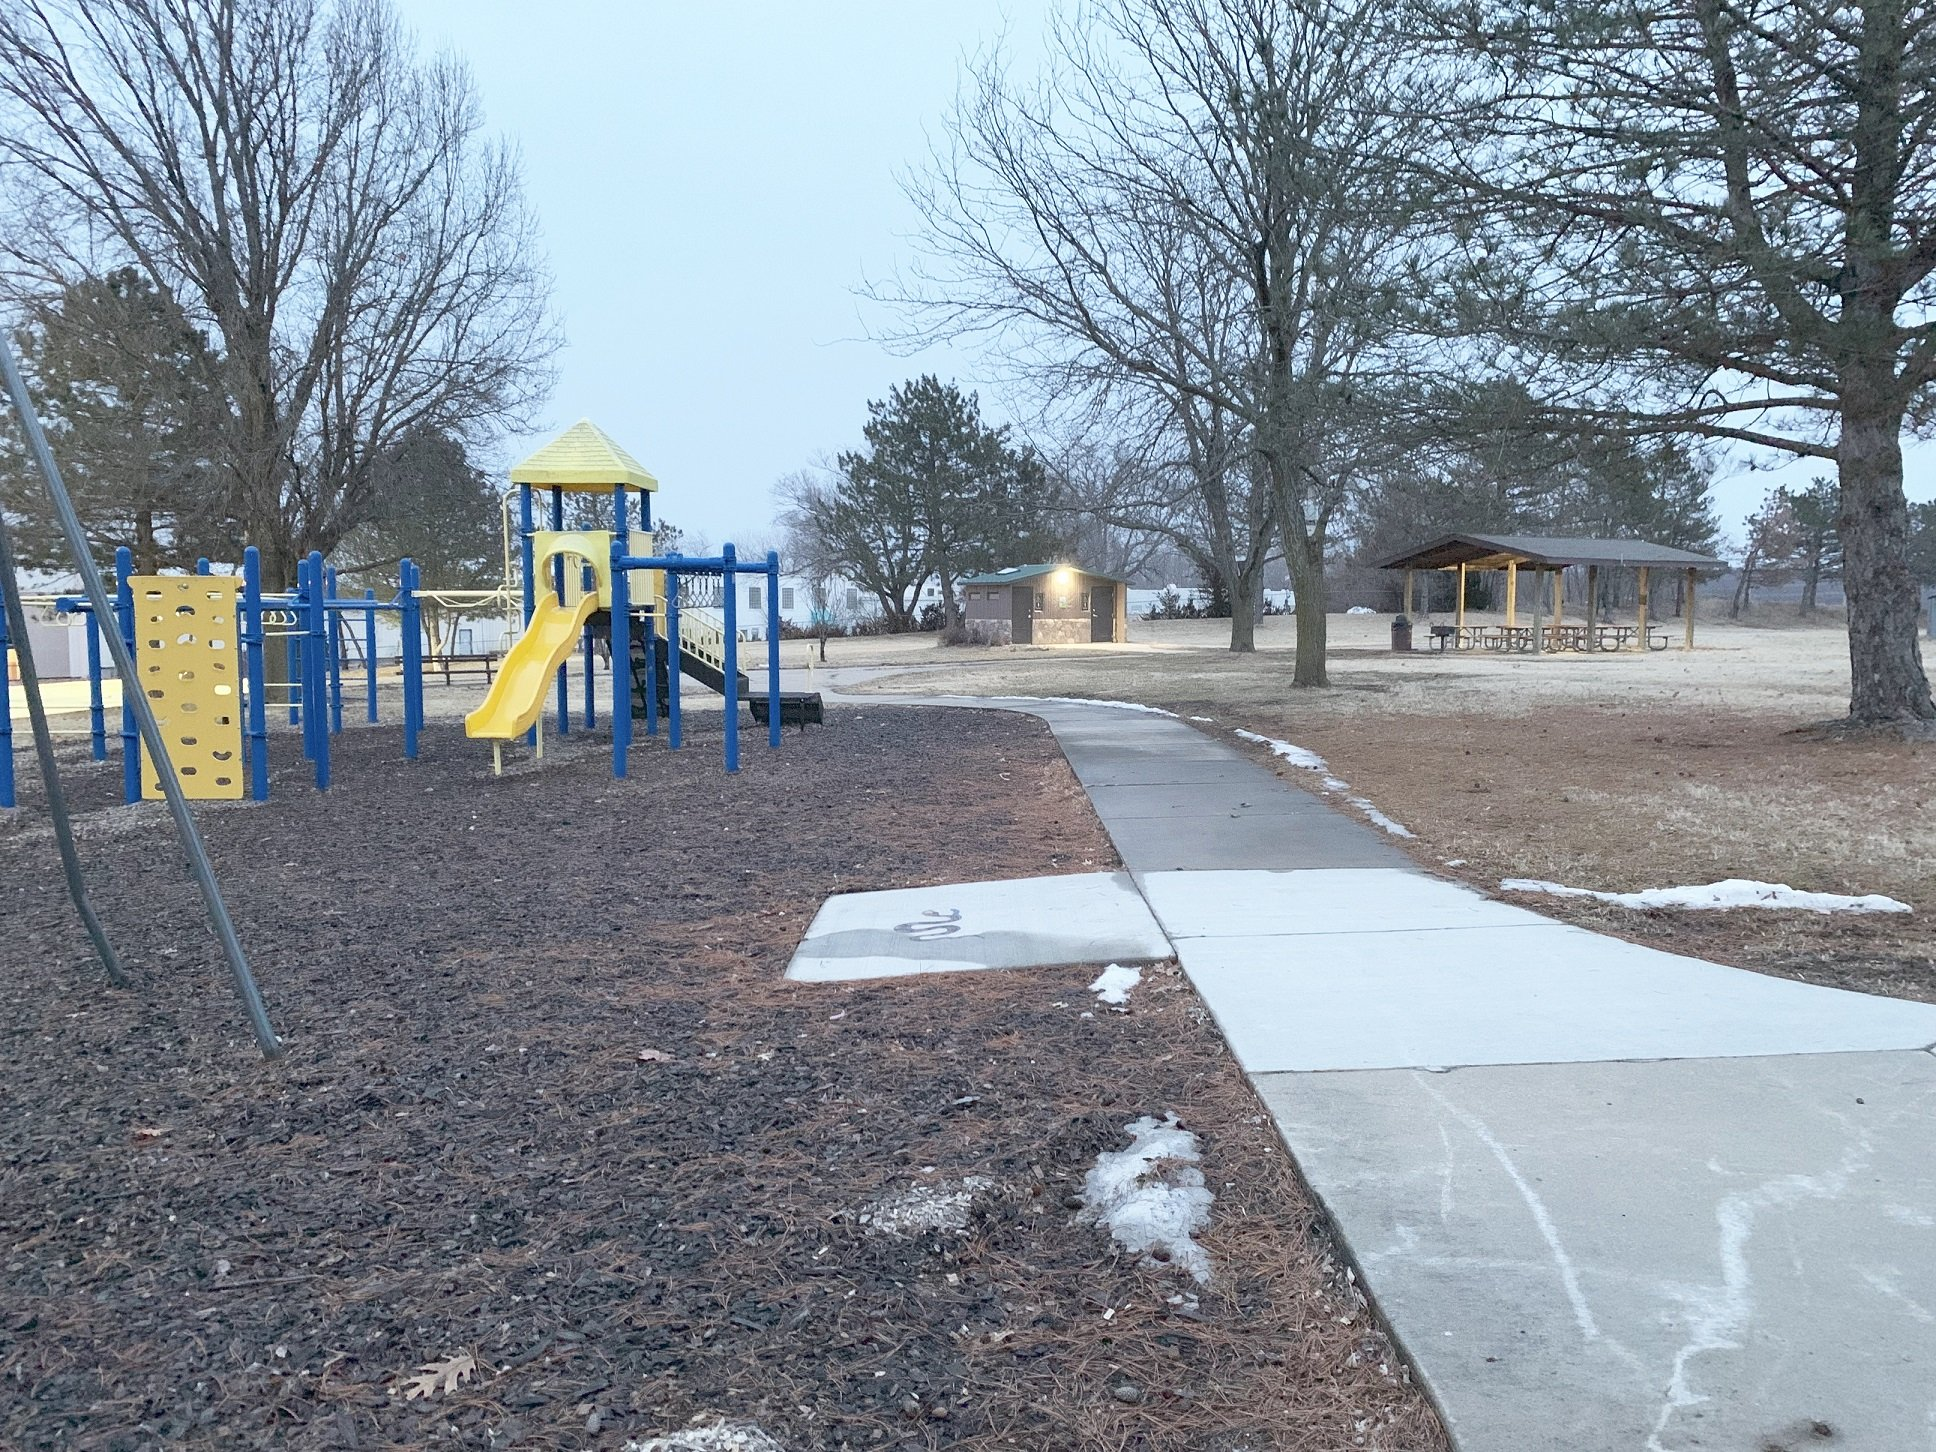 A different view of the park, including the playground and shelter.